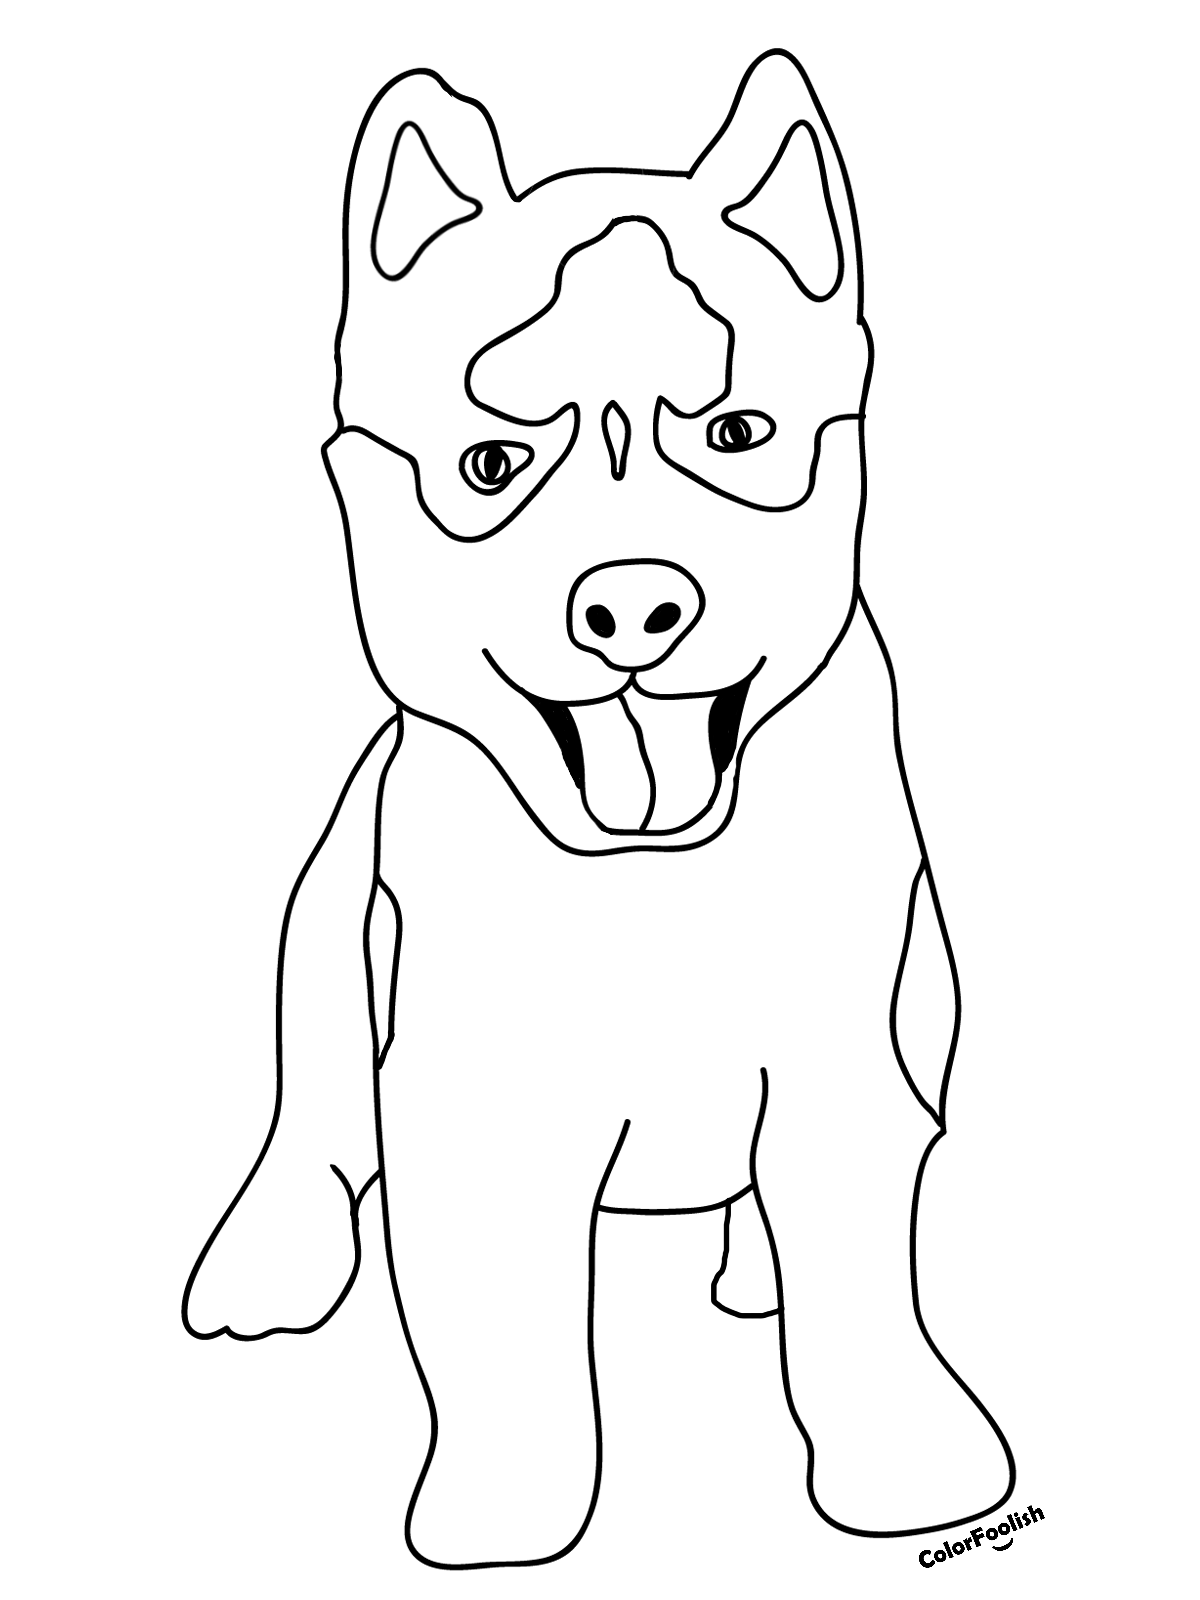 Coloring page of a husky dog puppy